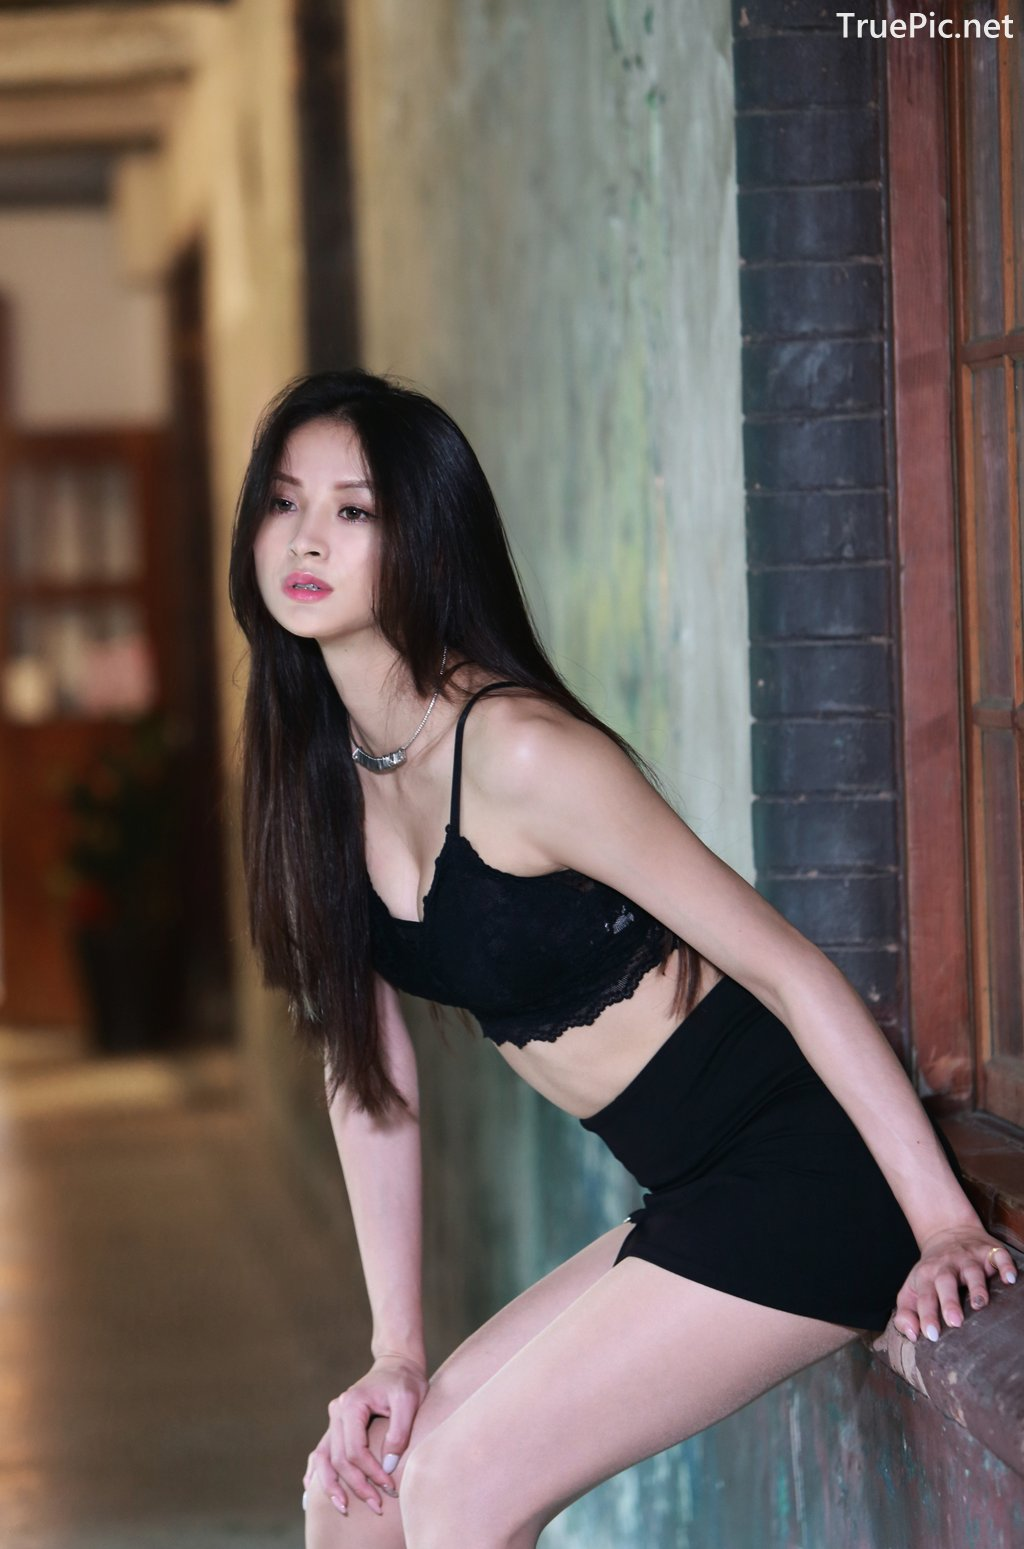 Image-Taiwanese-Beautiful-Long-Legs-Girl-雪岑Lola-Black-Sexy-Short-Pants-and-Crop-Top-Outfit-TruePic.net- Picture-37